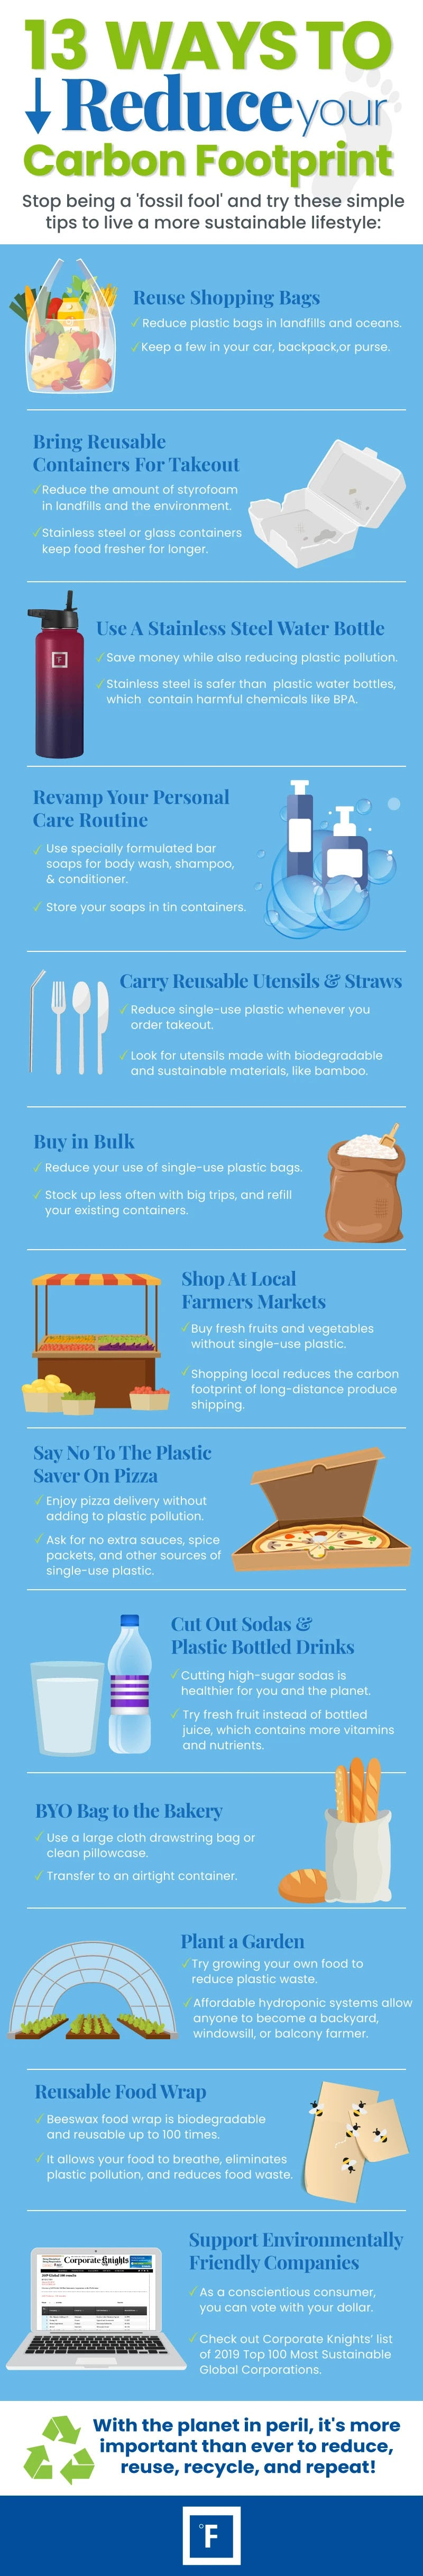 13 Ways to Lower Your Footprint #infographic